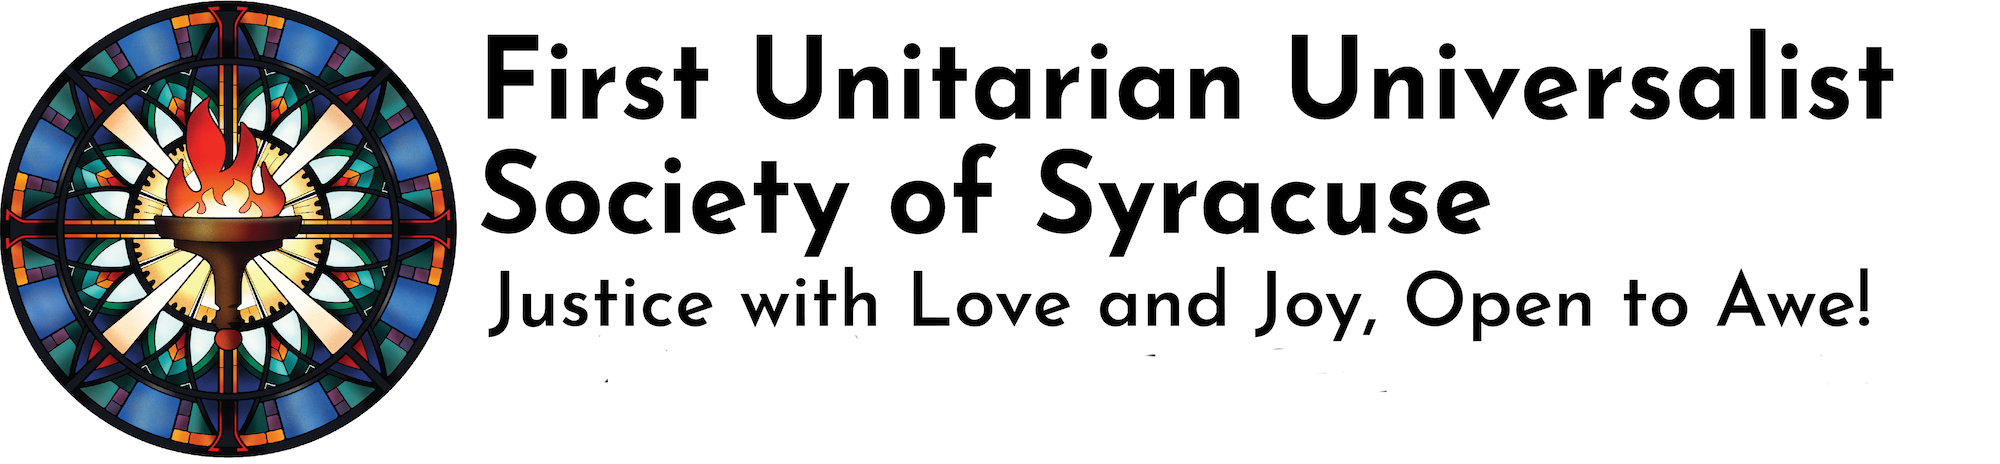 First Unitarian Universalist Society of Syracuse Logo